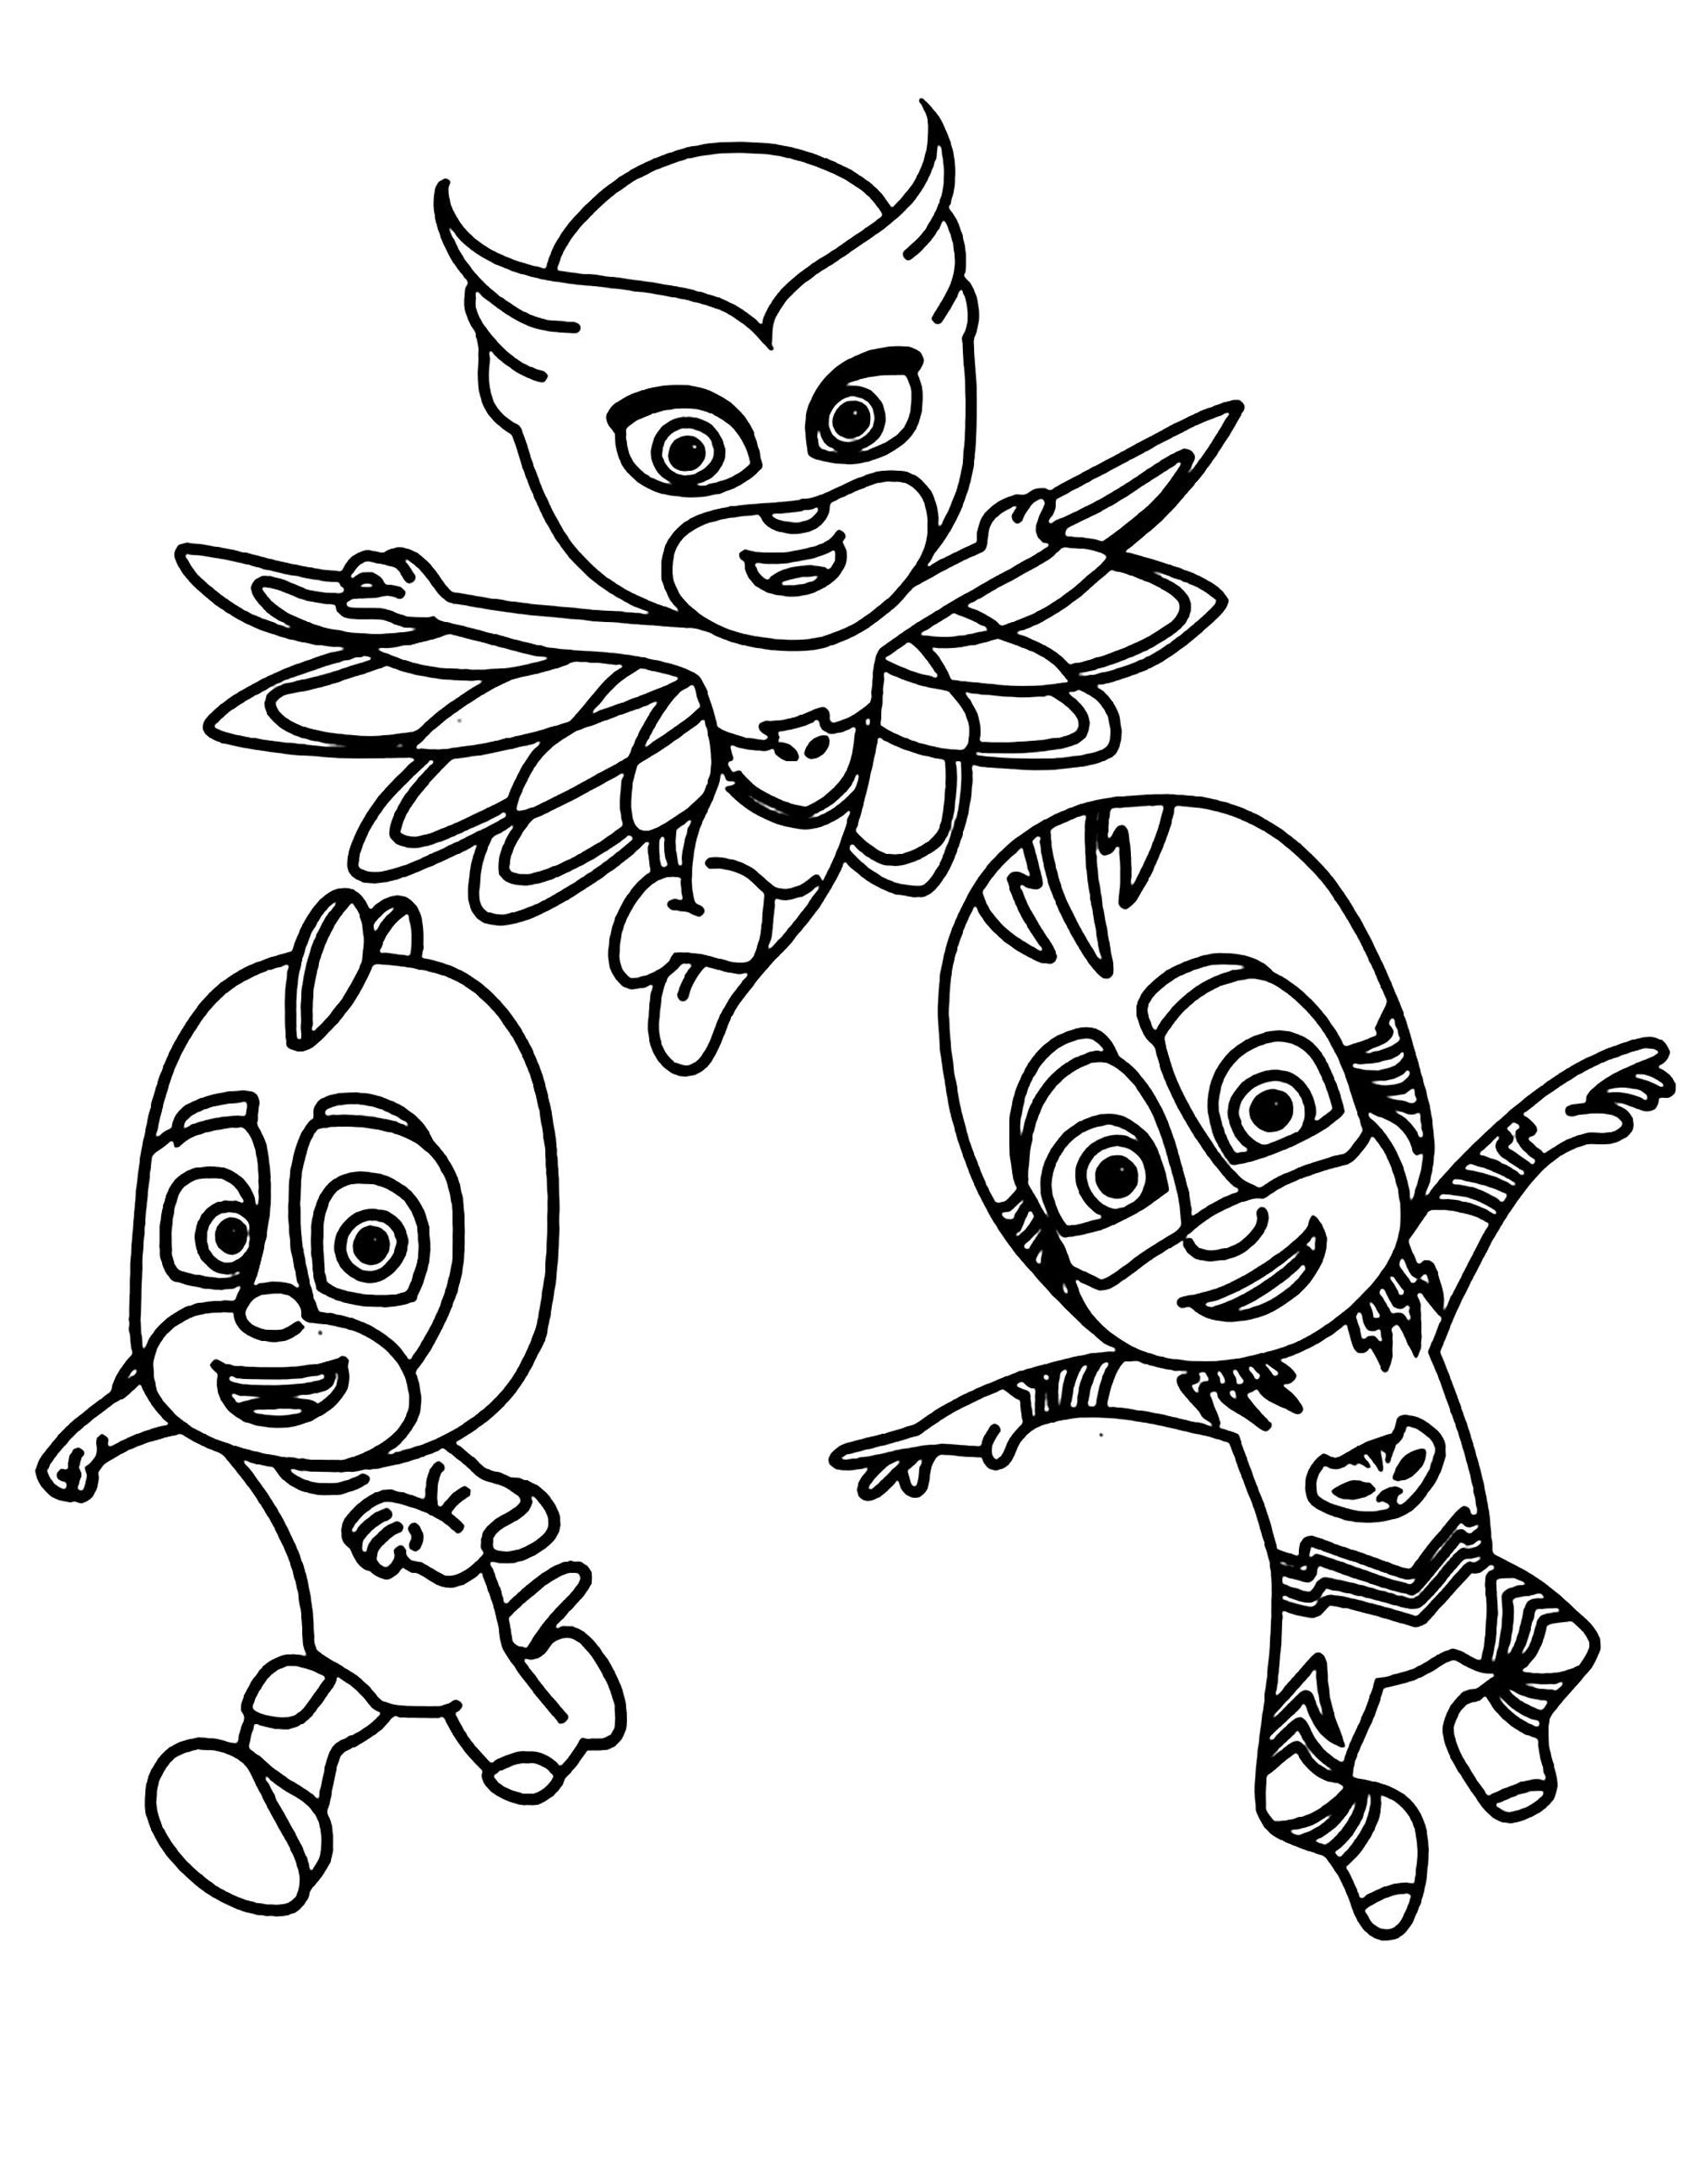 Pj Masks To Print For Free